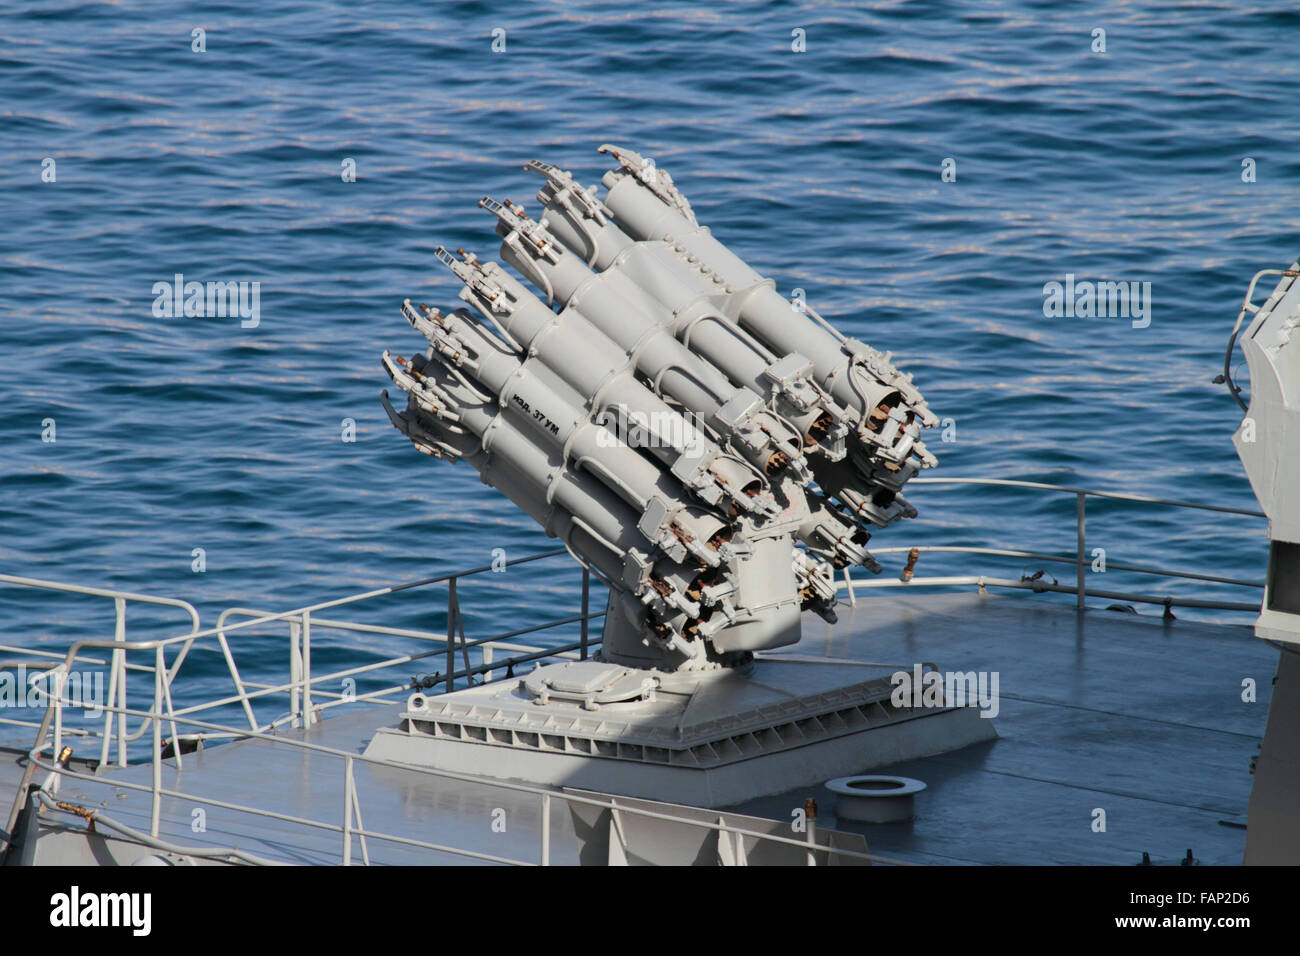 RBU-6000 twelve-barrel anti-submarine rocket launcher on board the Russian Navy frigate RFS 727 Yaroslav Mudry - Stock Image